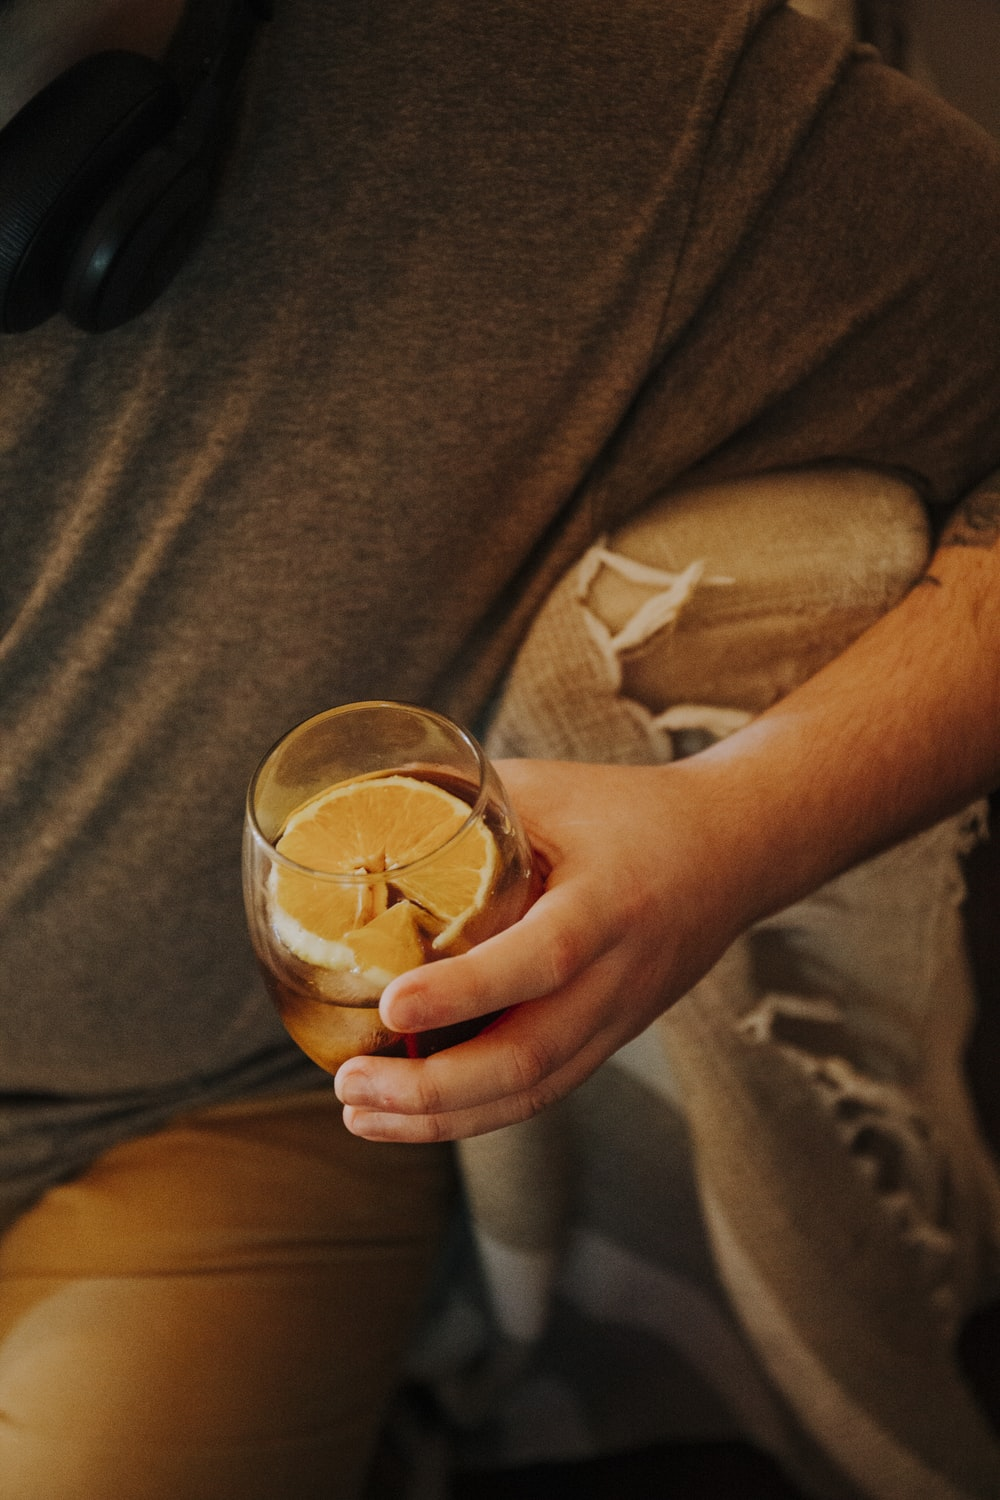 person holding clear drinking glass with brown liquid